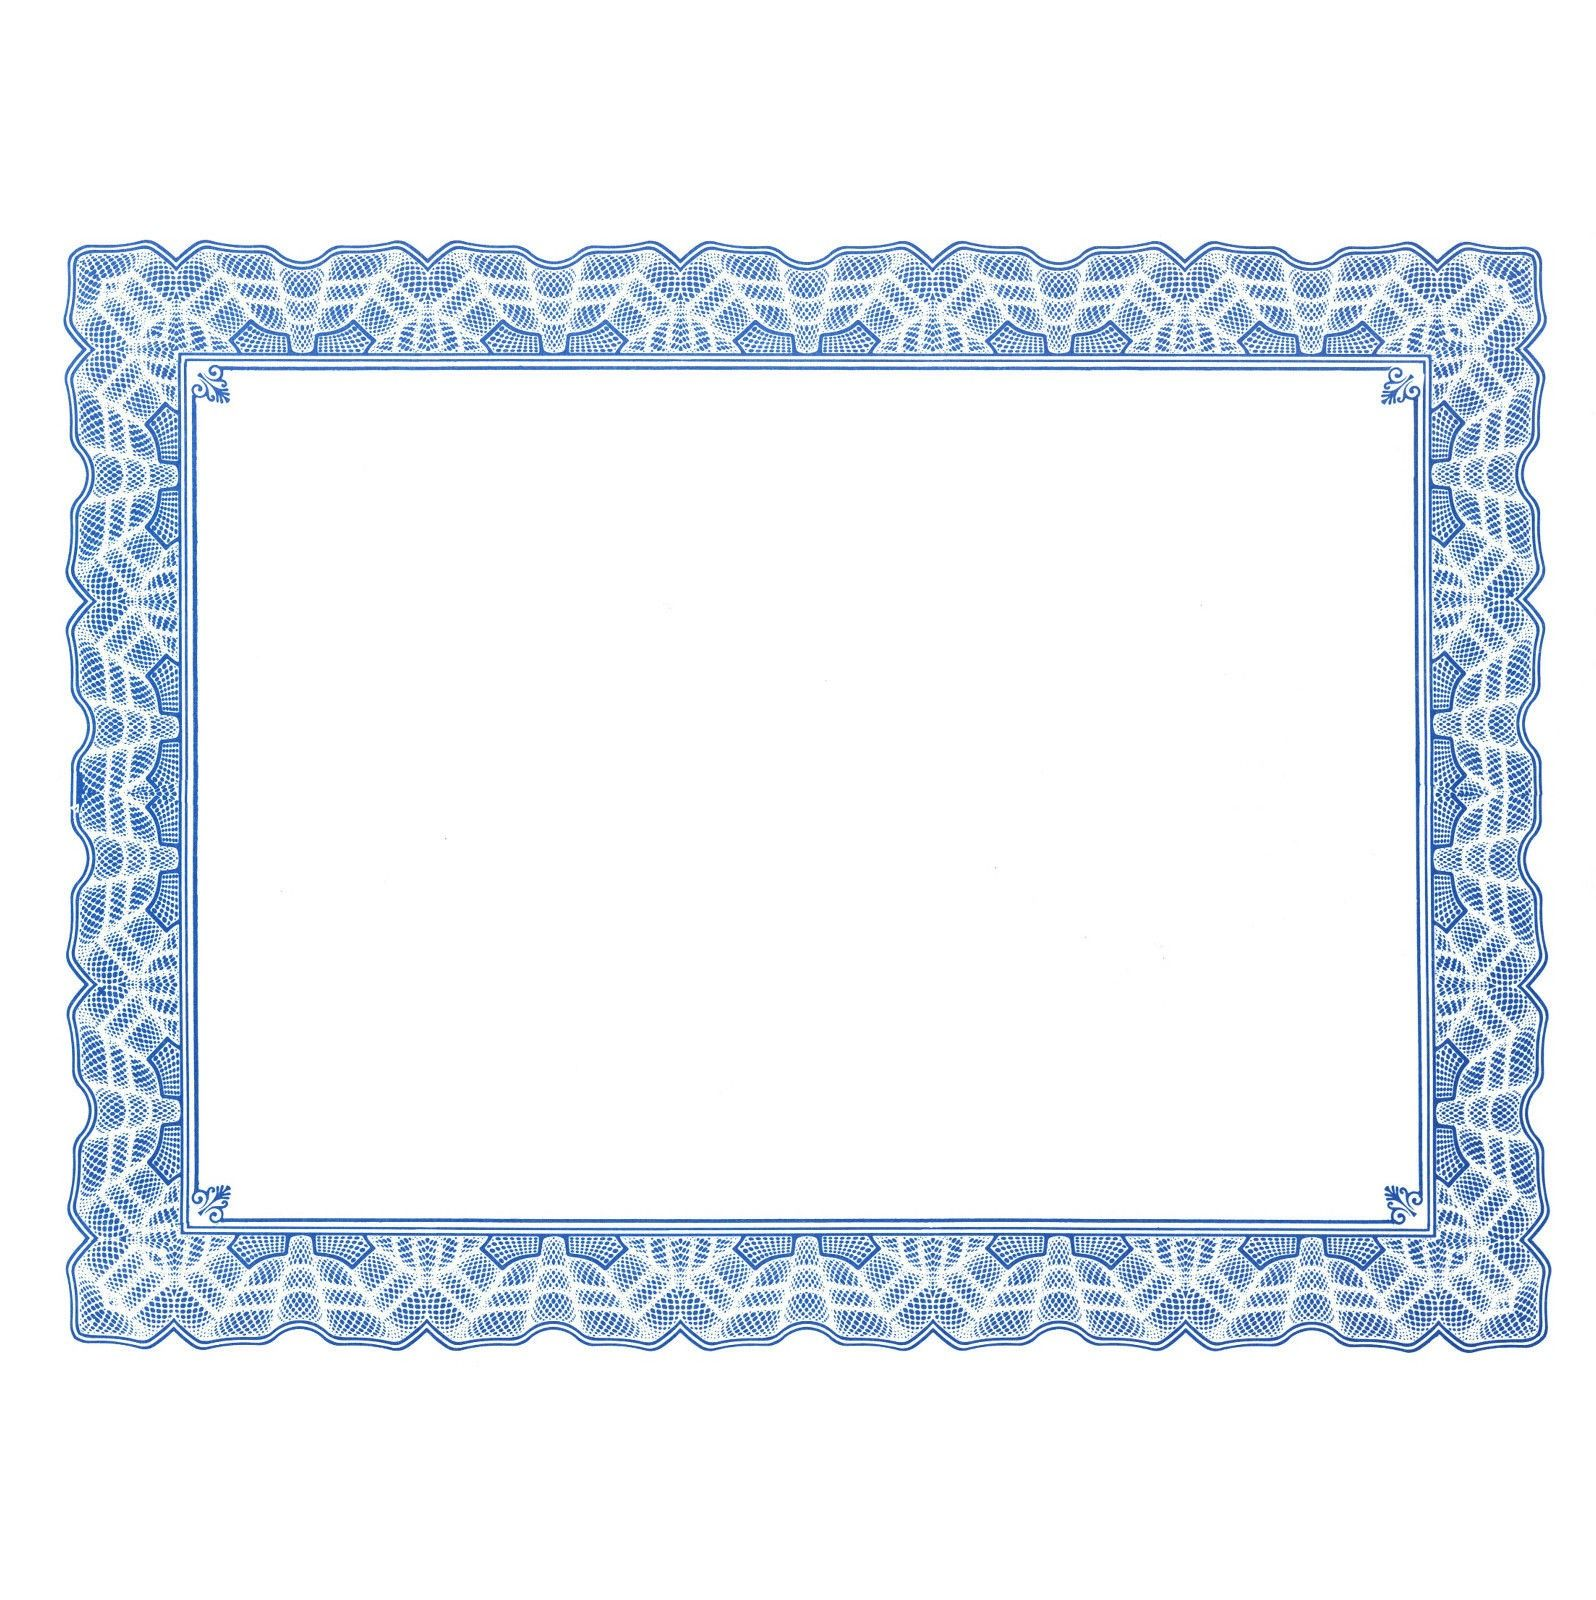 Free Certificate Border Templates For Word | Besttemplates123  Blank Certificate Templates For Word Free